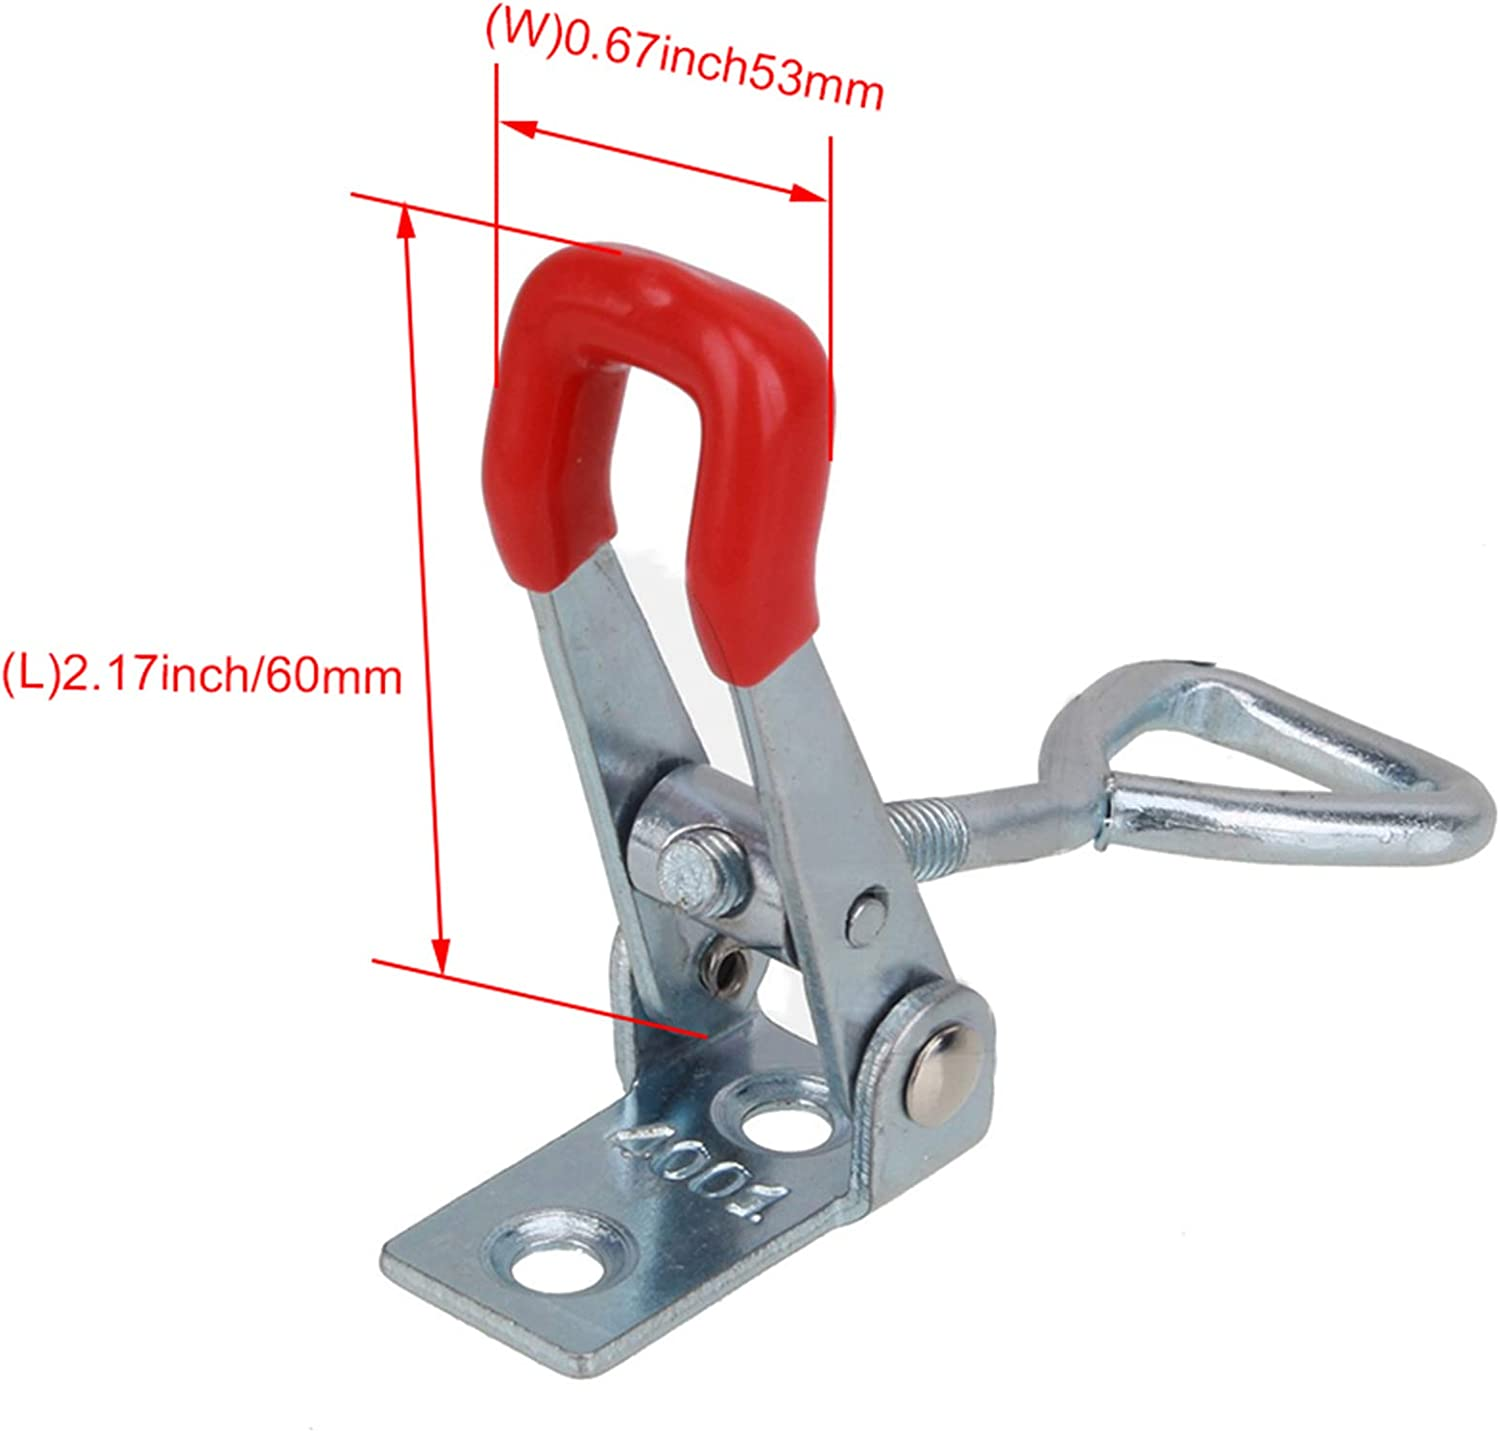 2pcs Small Size Adjustable Quick Cabinet Handle Toggle Clamp Hasp